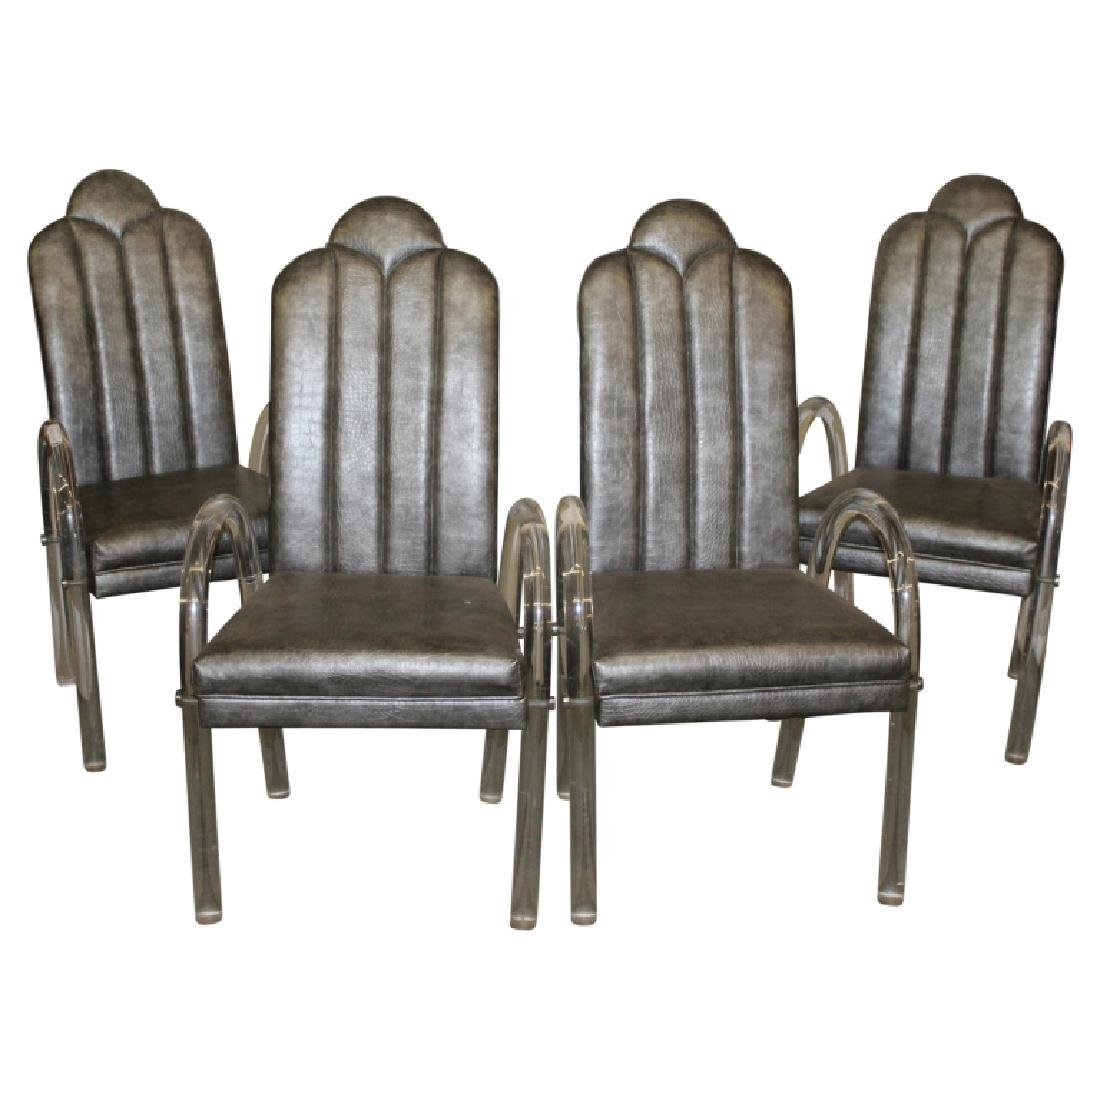 4 Mid Century Modern Lucite Upholstered Chairs